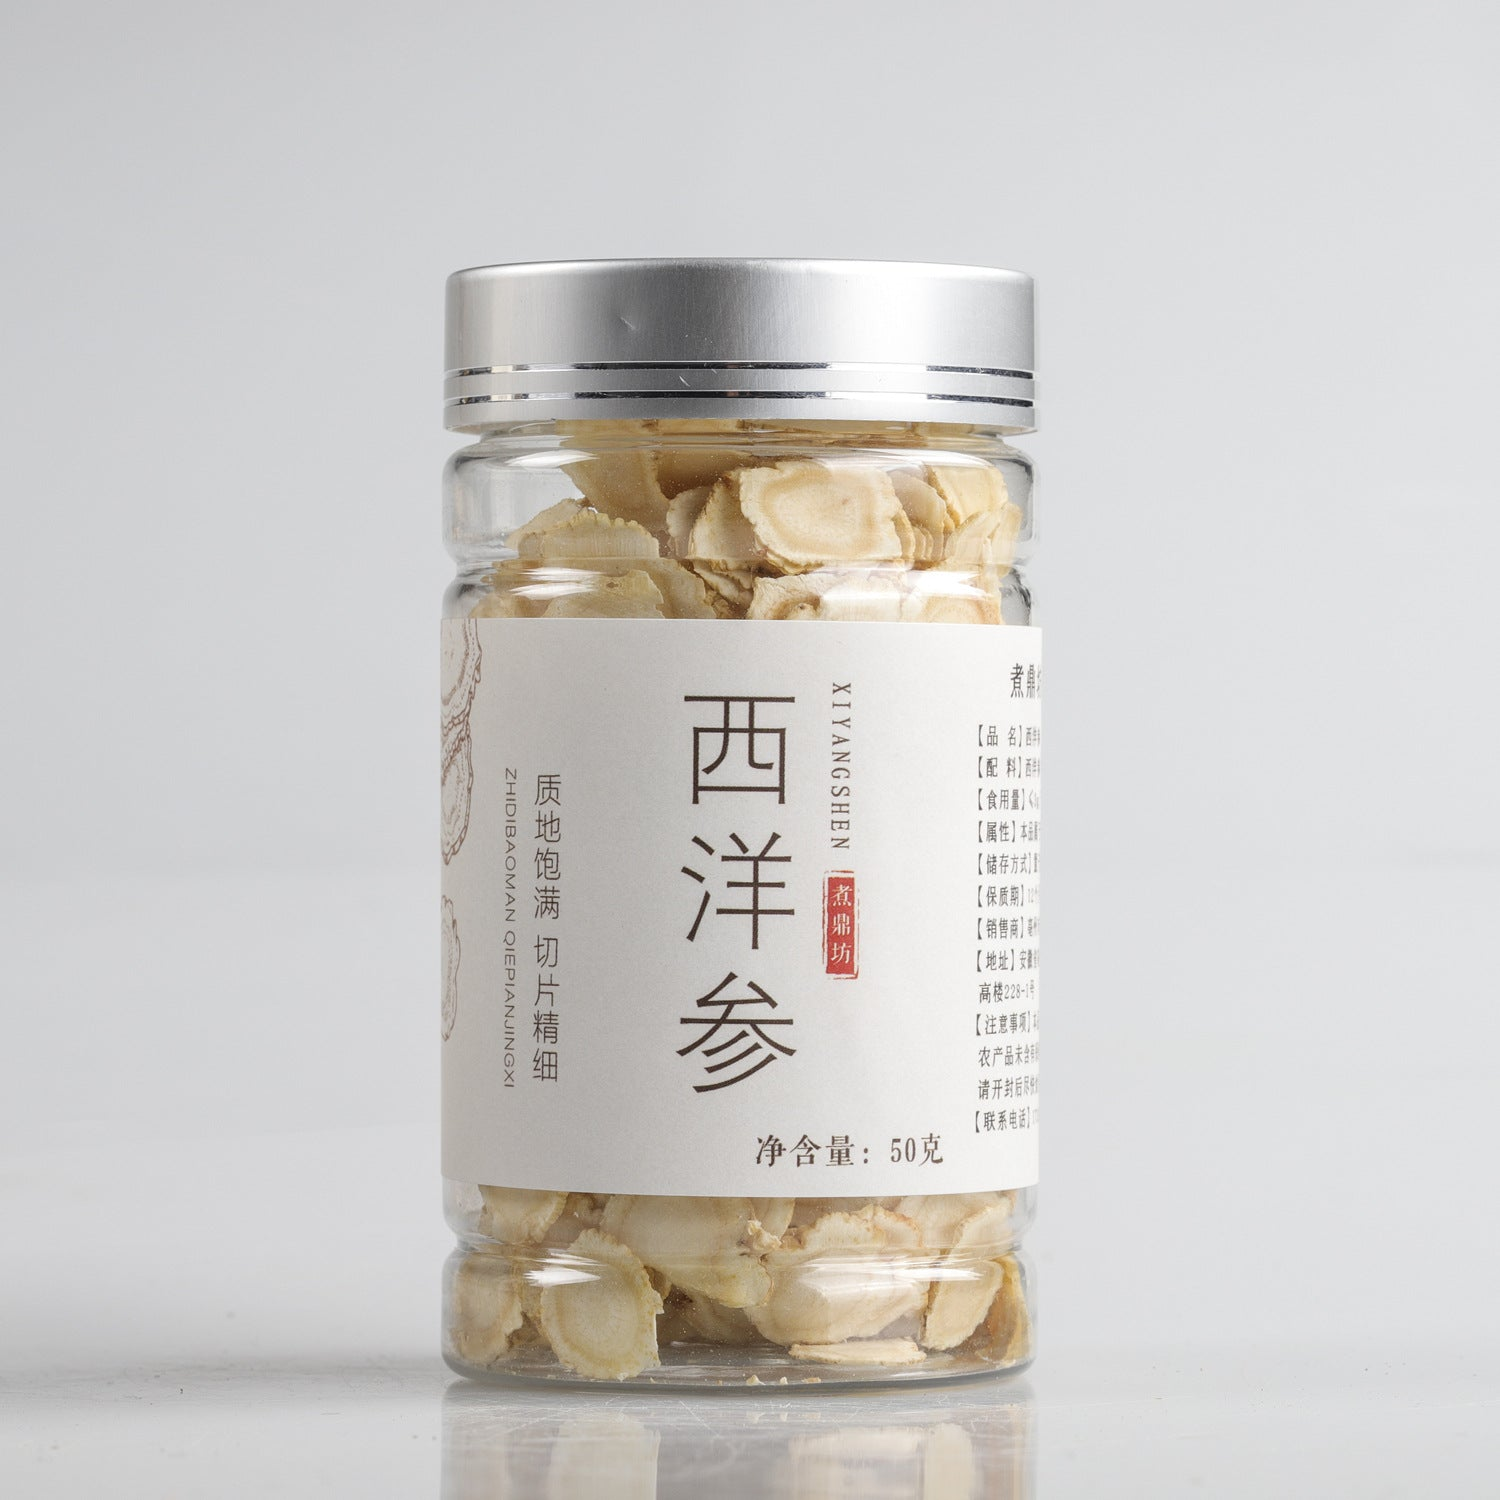 Cooking Dingfang American ginseng Ginseng tablets containing tablets bottled tablets 12mm50g OEM custom American ginseng slices